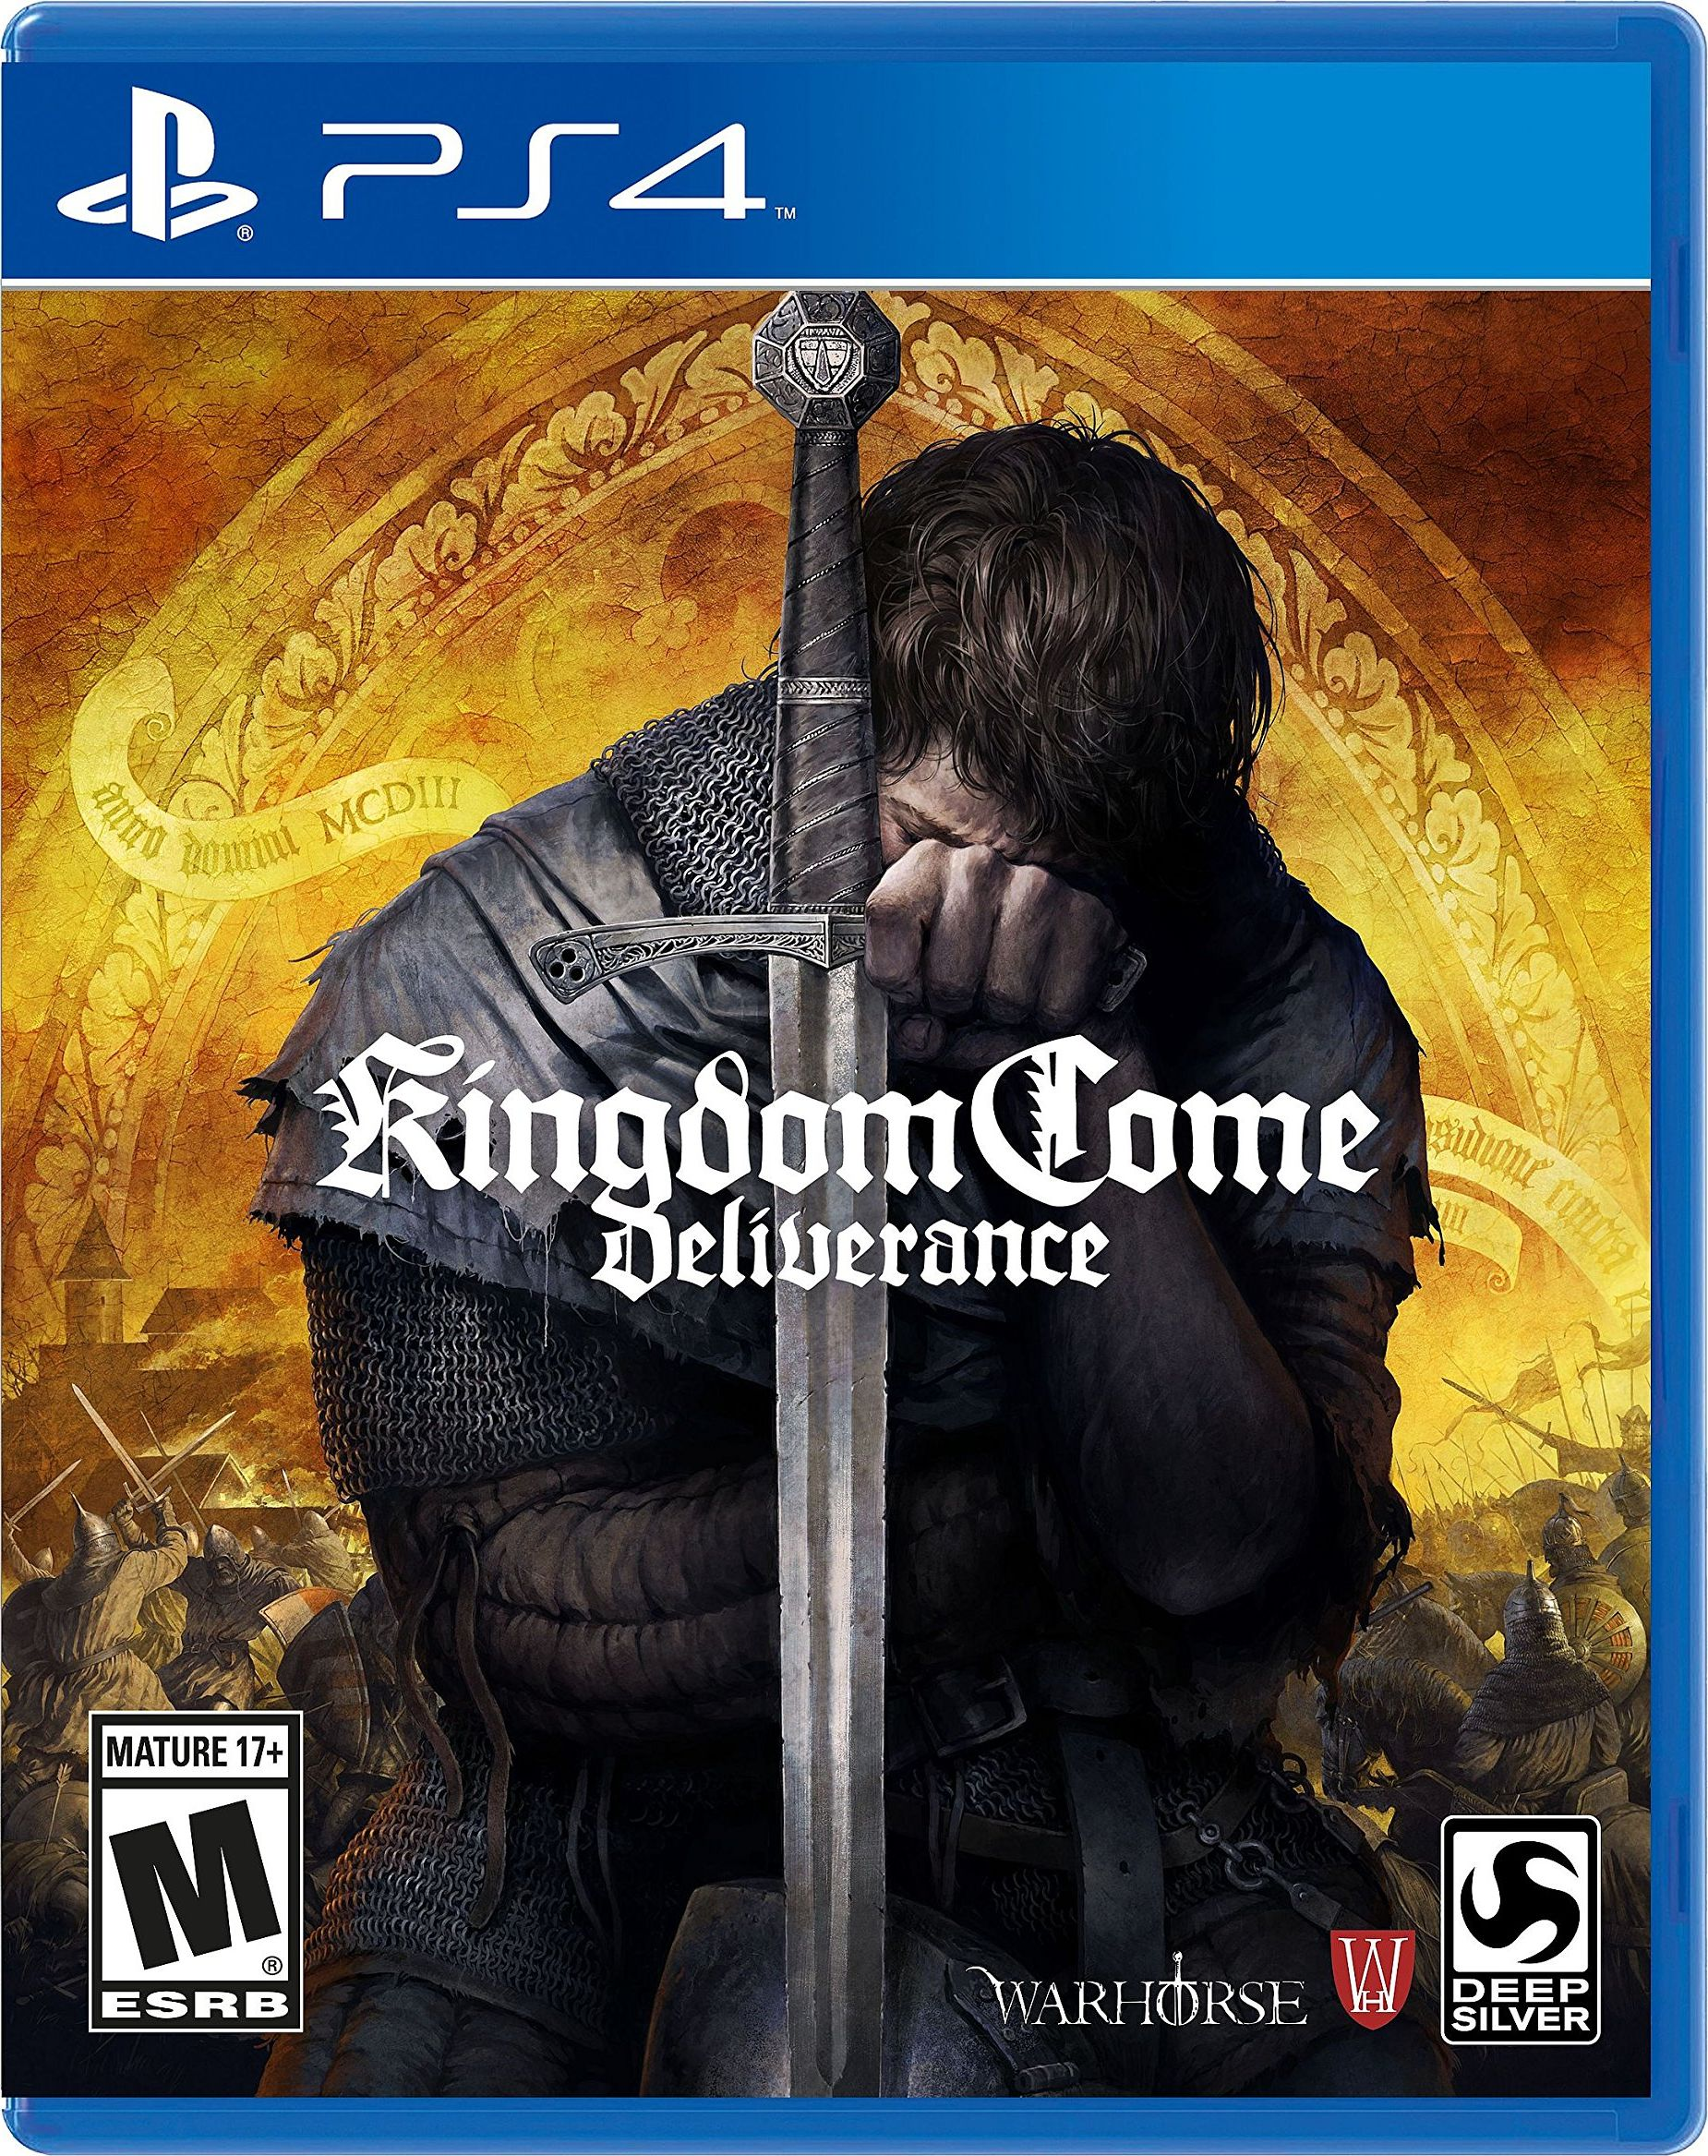 4 Games That Comes With Ps4 : Kingdom come deliverance release date xbox one ps